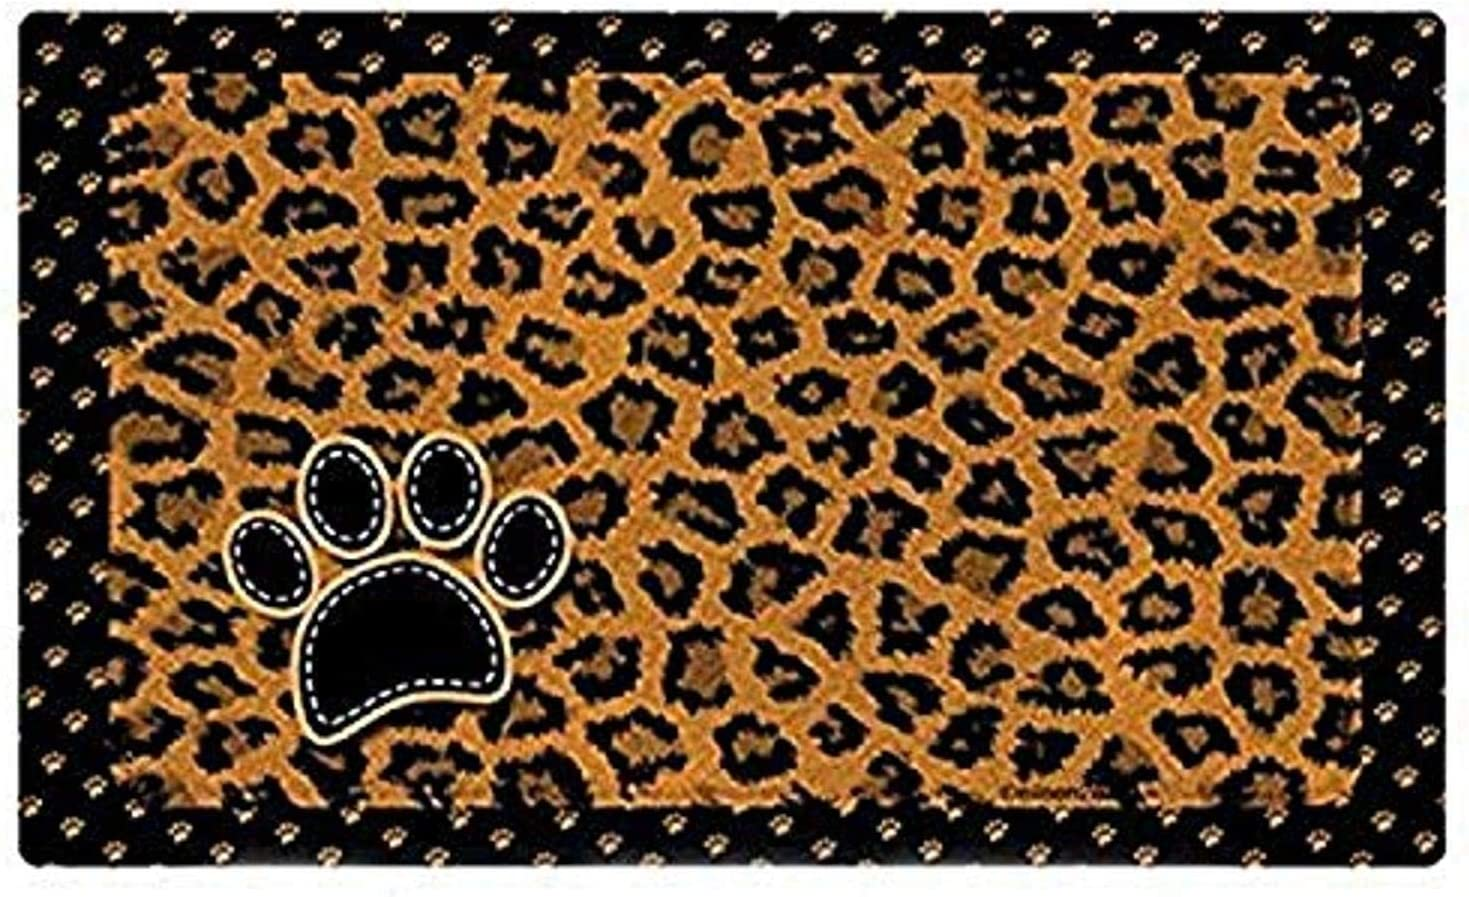 Drymate Pet Bowl Place Mat in Furtitude, 12 by 20-Inch, Leopard, Tan